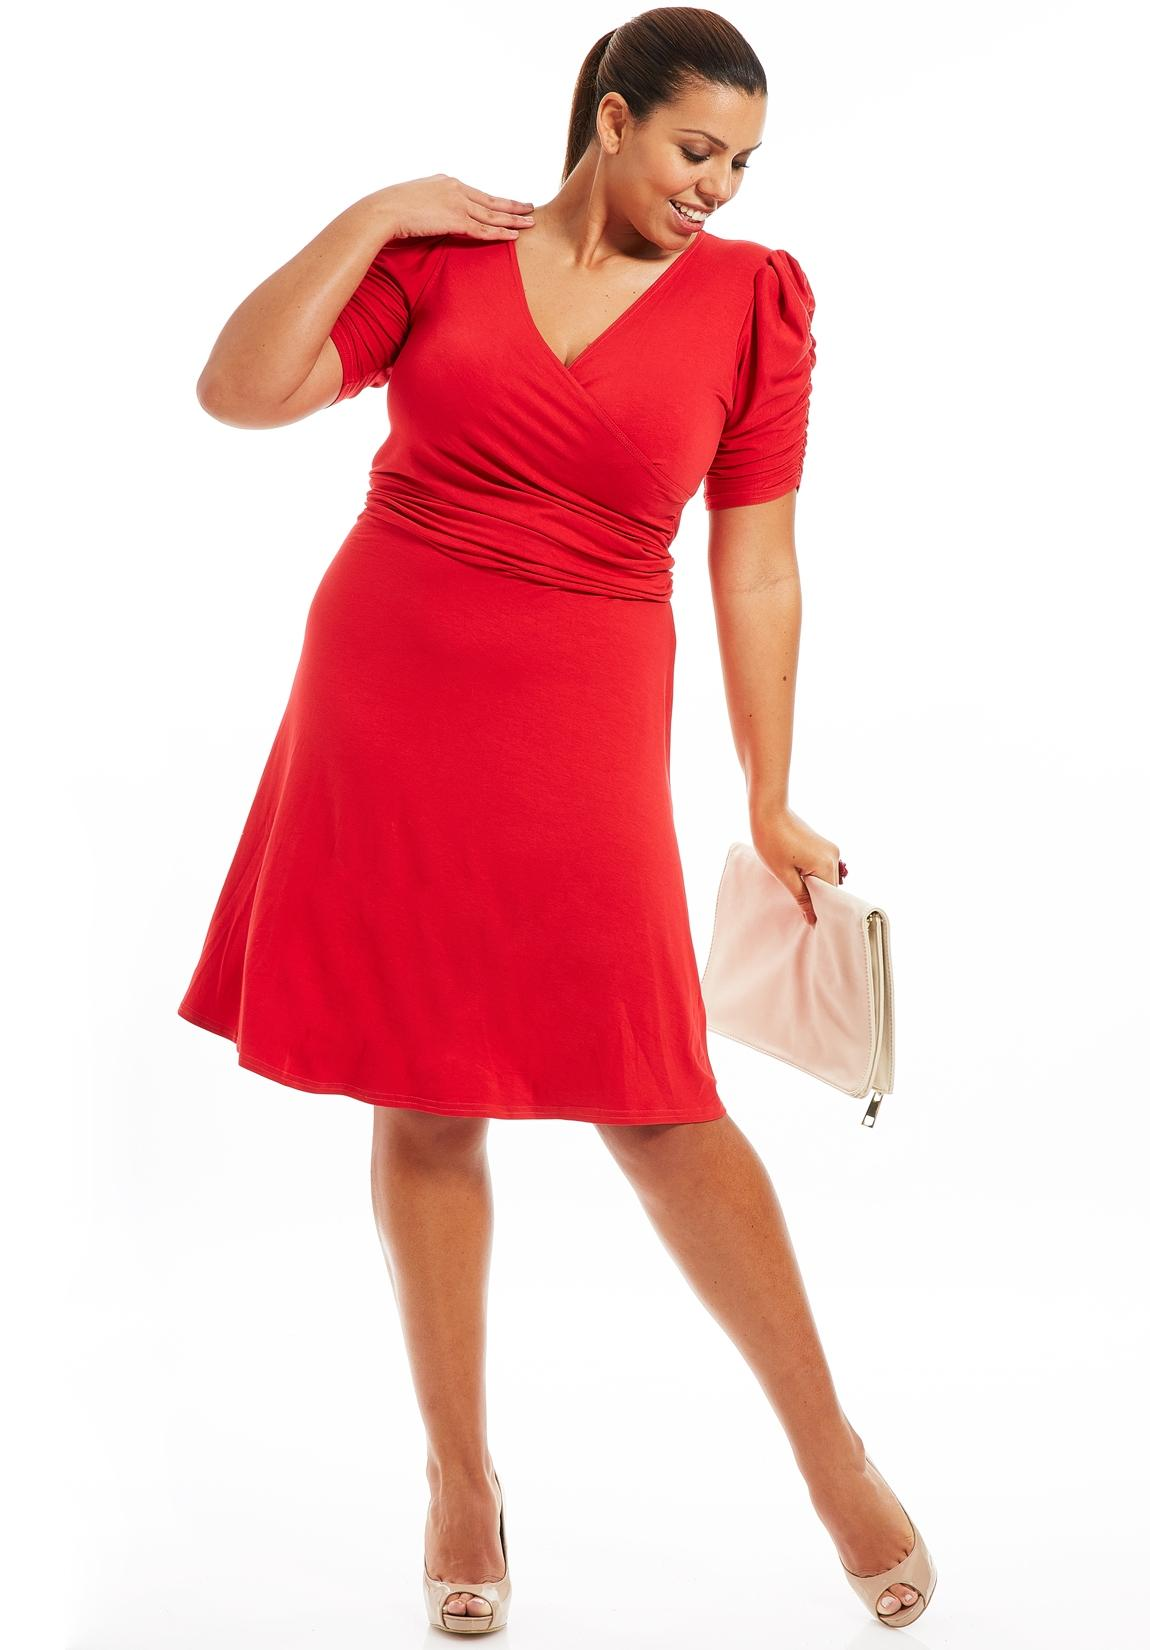 Robe rouge pour femme ronde